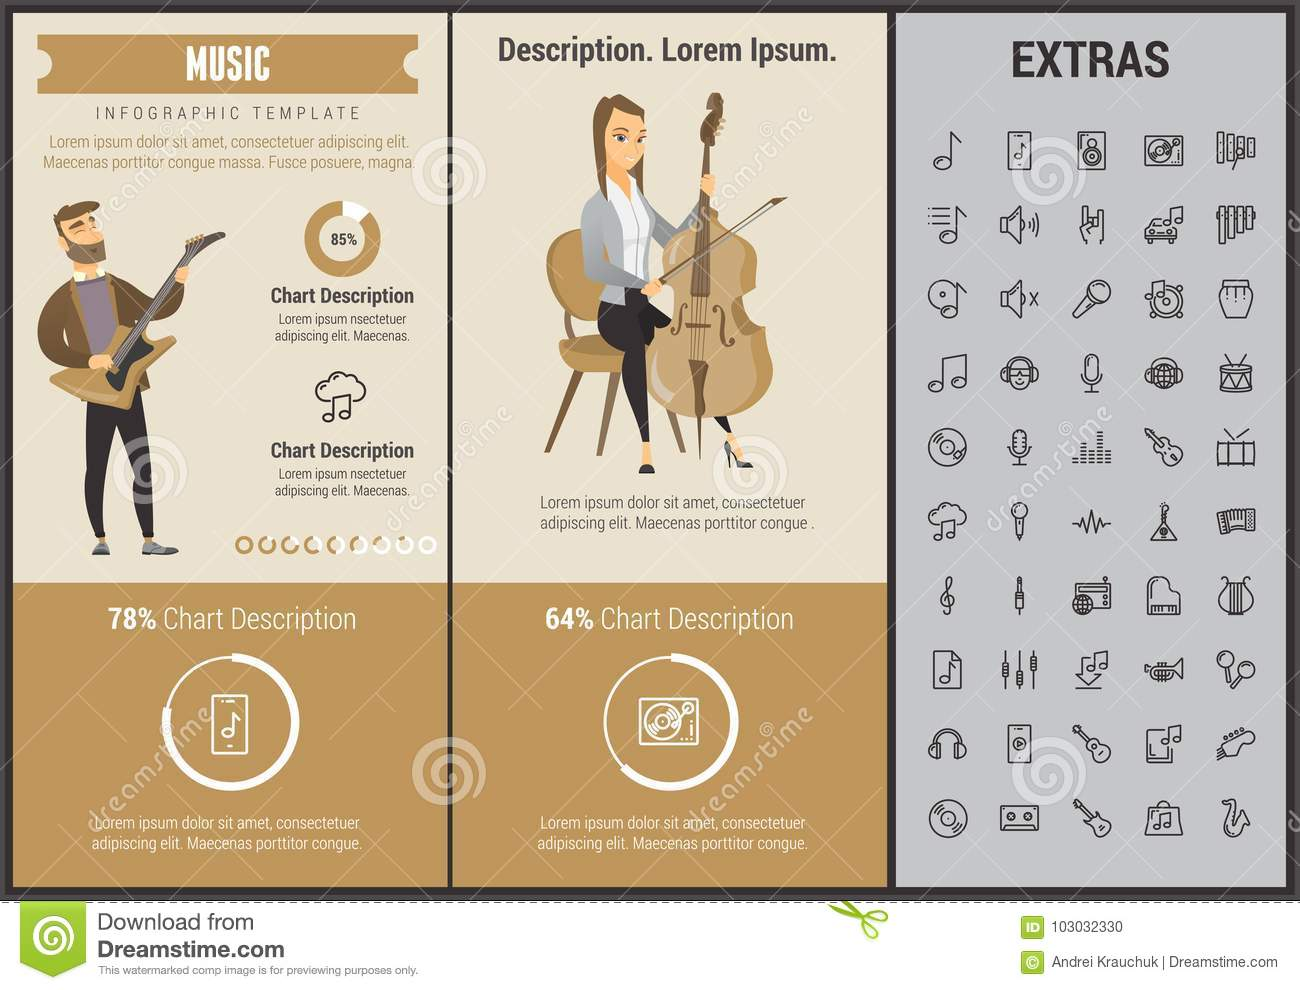 Music Infographic Template, Elements And Icons  Stock Vector